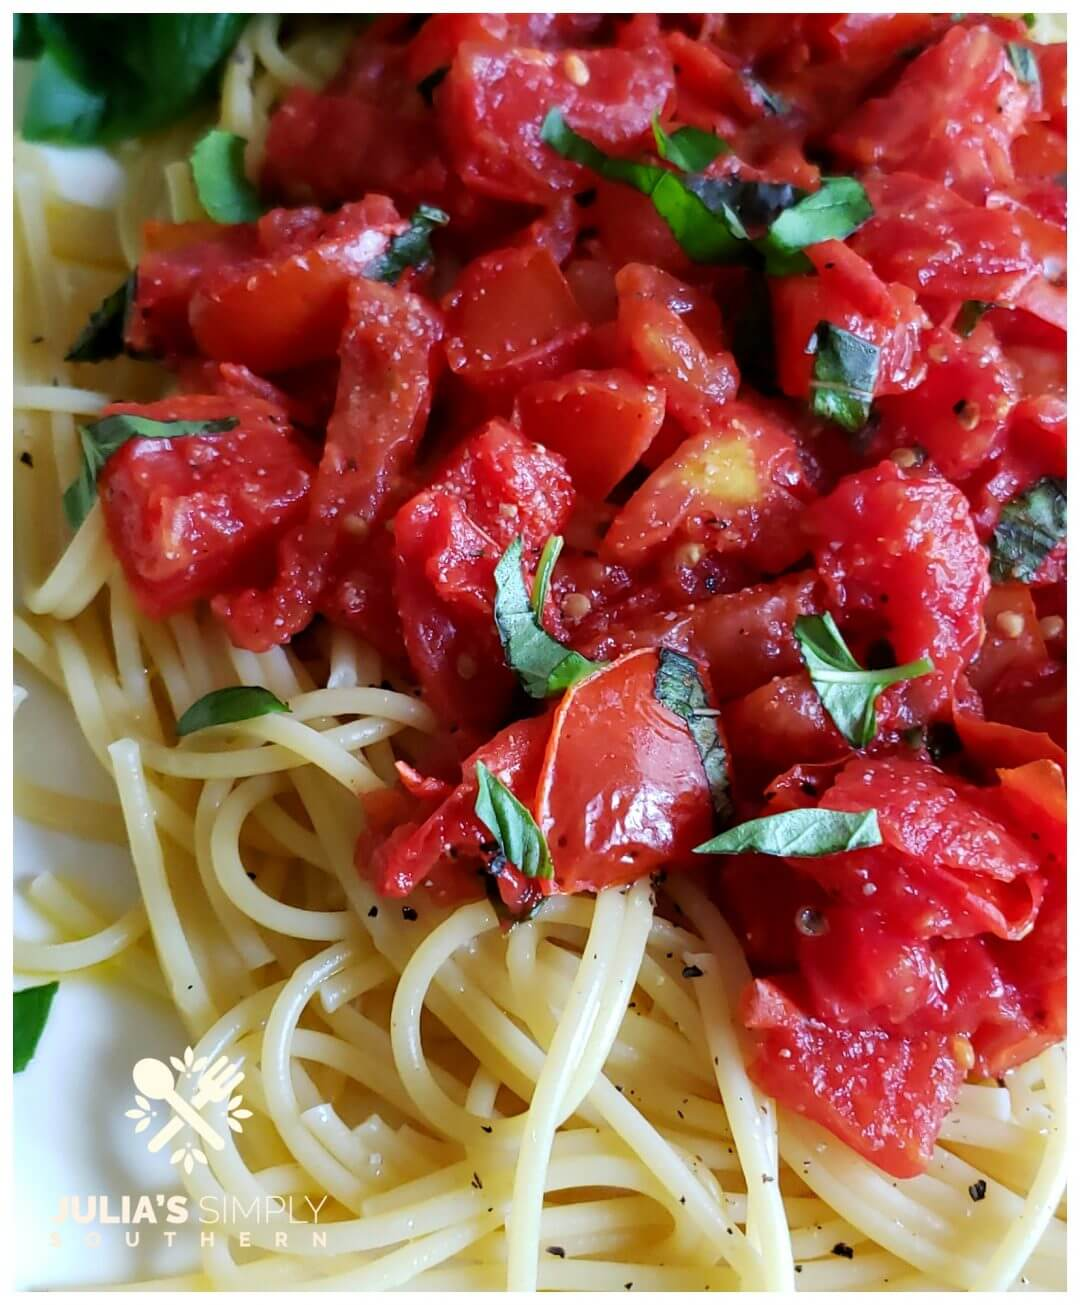 Fresh summer tomatoes with basil and pasta. This easy recipe cooks up quick for busy family dinners.